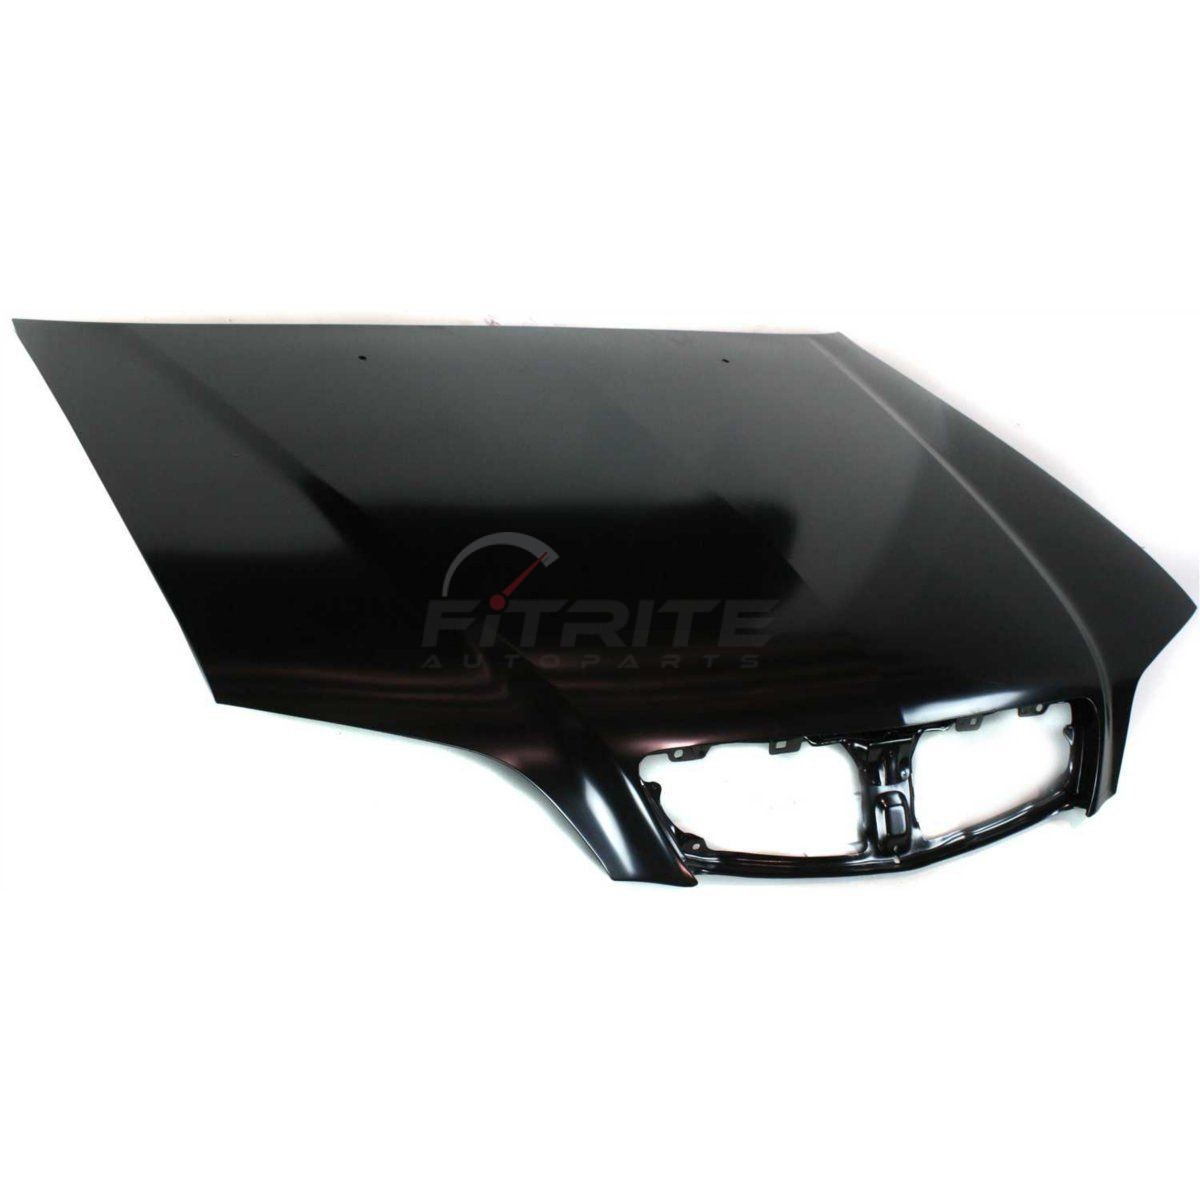 NEW FRONT HOOD PANEL FOR 1999-2001 ACURA TL AC1230108